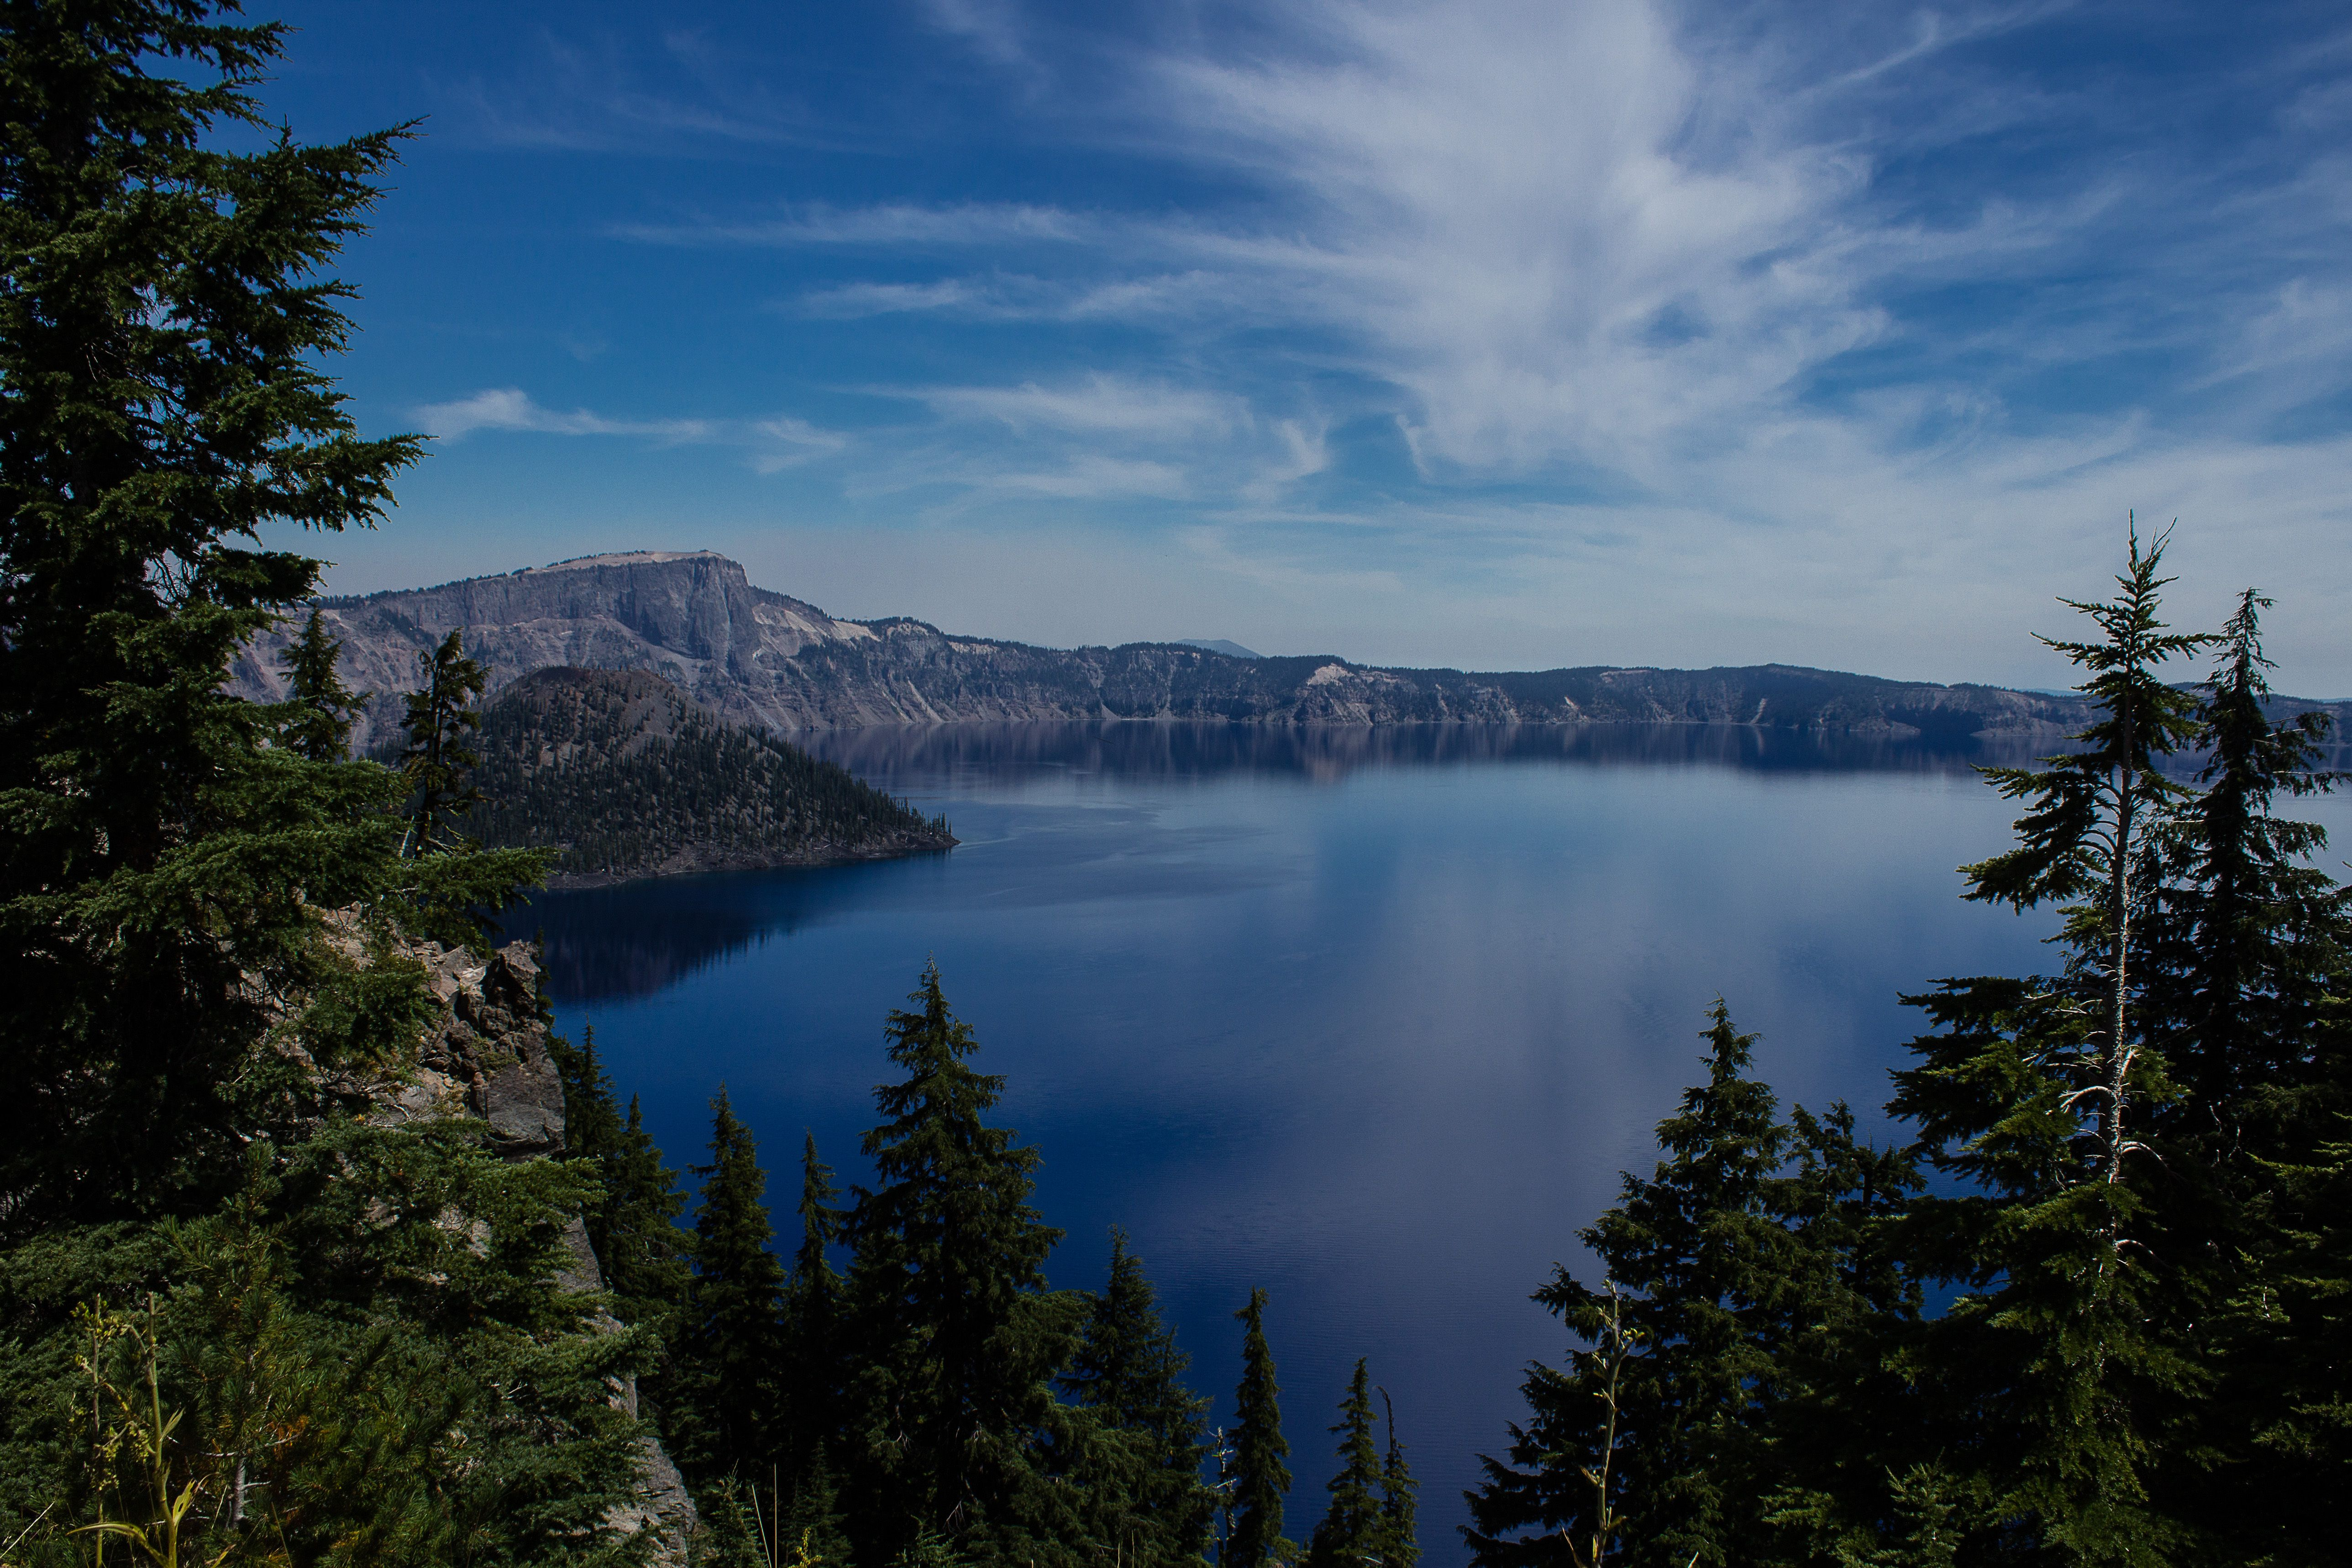 hispanic single women in crater lake Crater lake russ 167 likes 1 was crater lake russ is at crater lake ford & lincoln may marlene and all our men and women who've served our country.